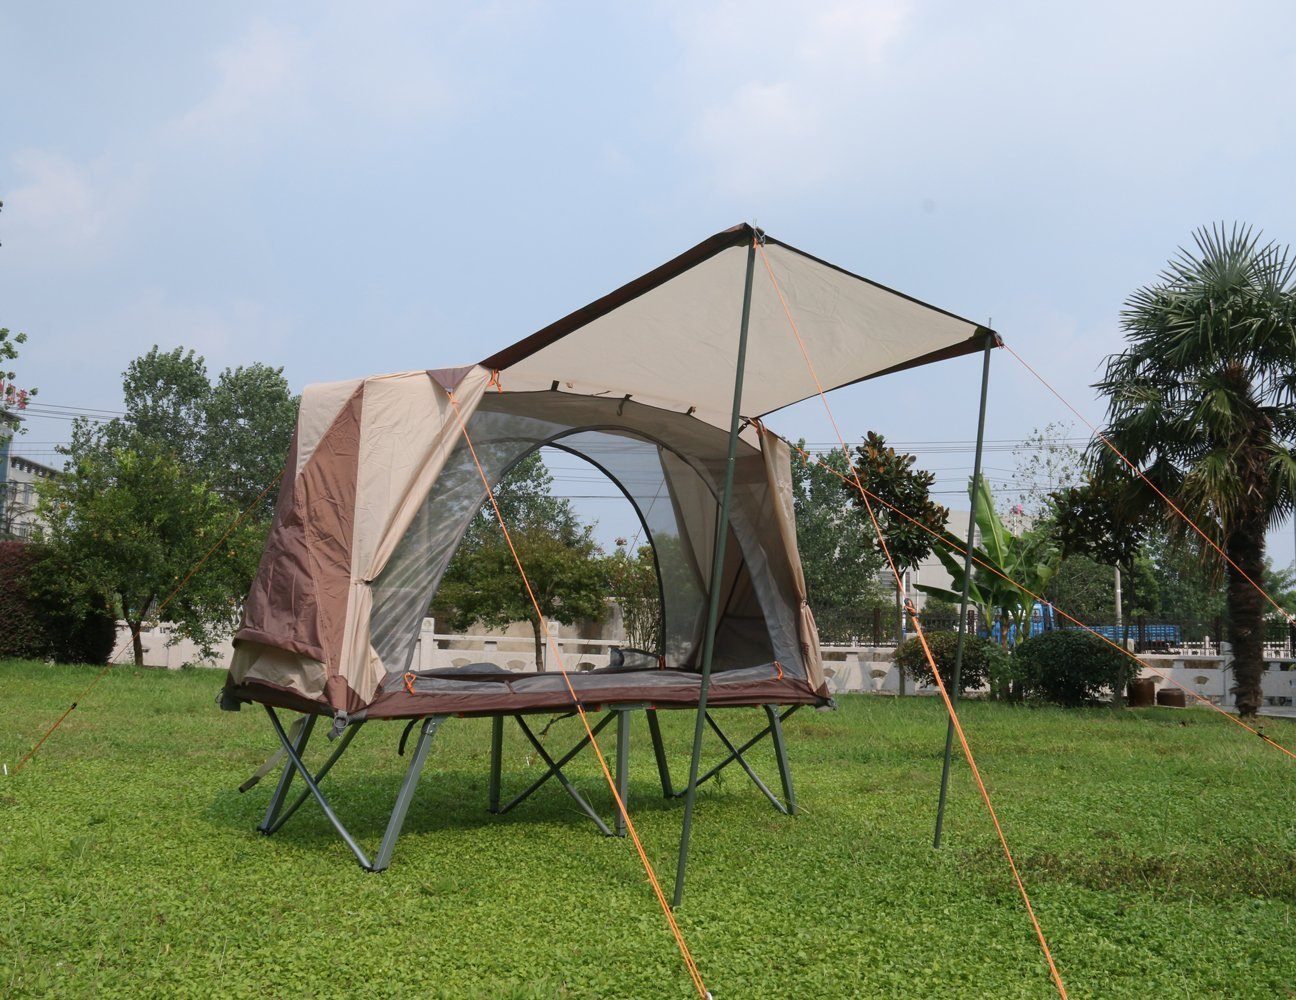 Compact Portable Tent Cot 1 Person C&ing Cot Single Sandy Beach Fishing Tent Double deck Ultralight Tent off the ground-in Tents from Sports ... & Compact Portable Tent Cot 1 Person Camping Cot Single Sandy Beach ...